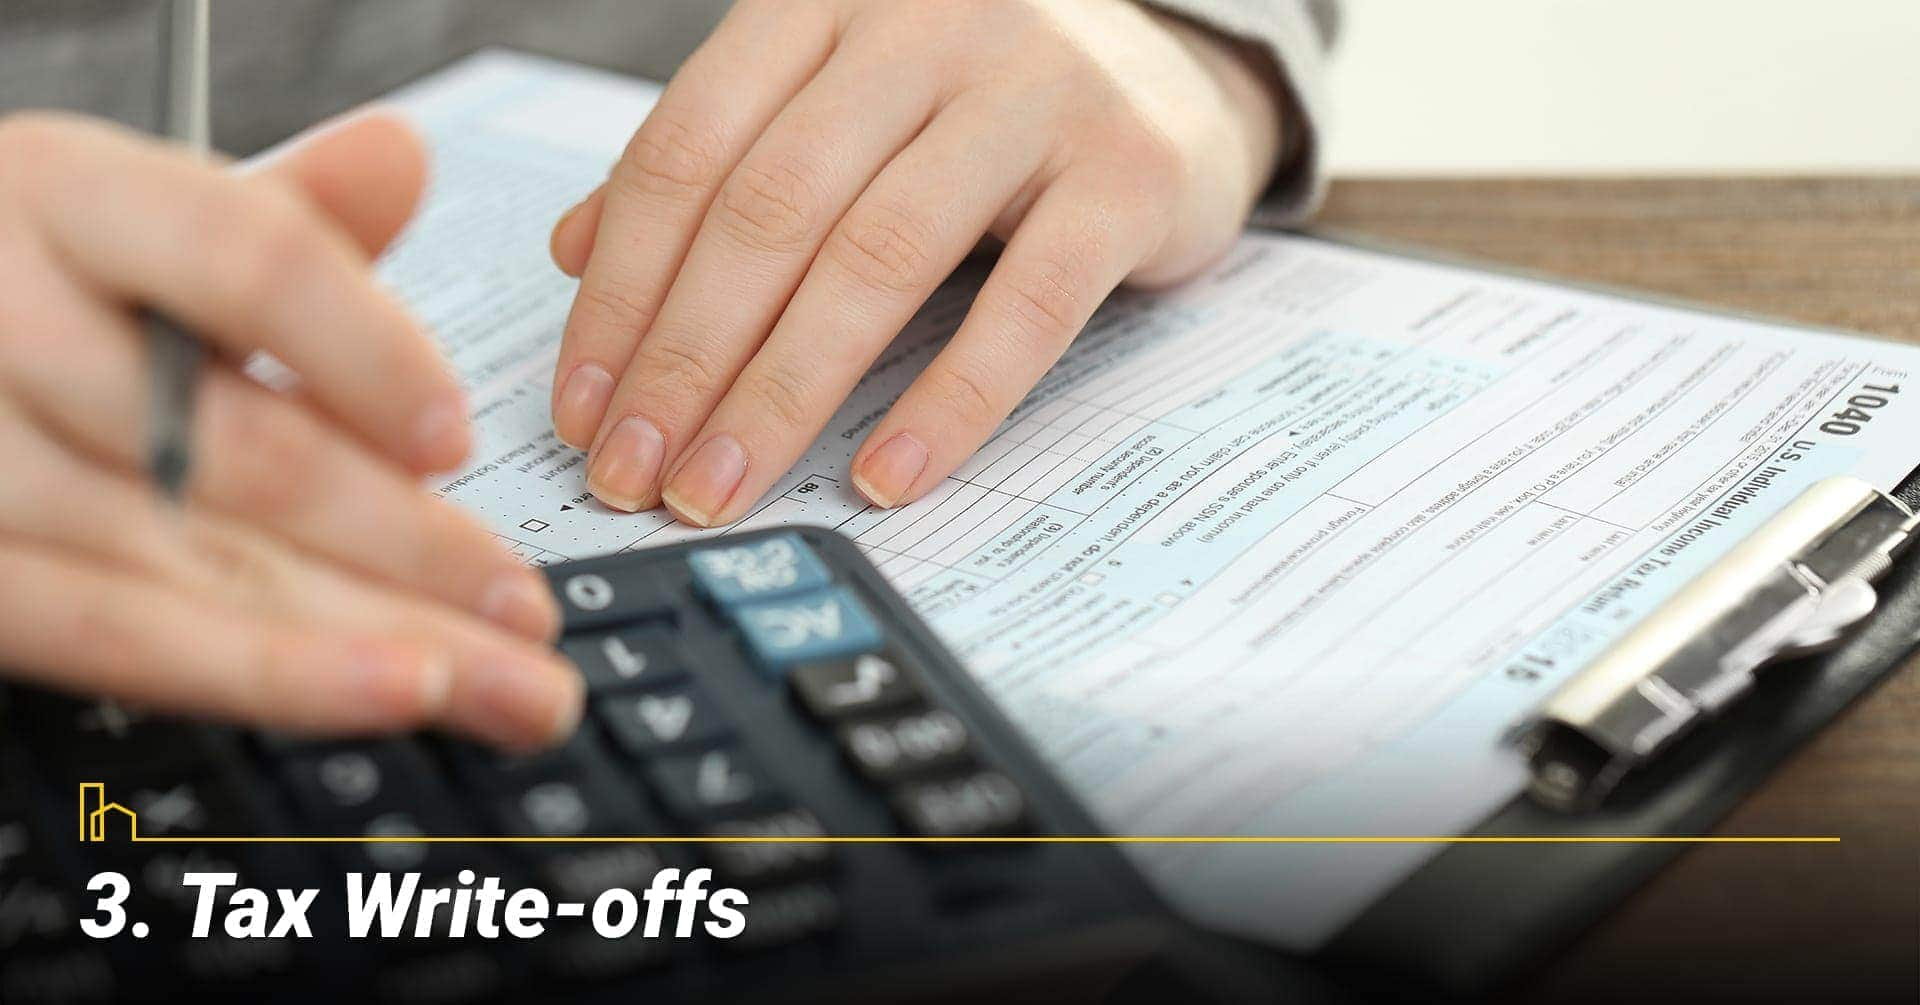 Tax Write-offs, save on taxes